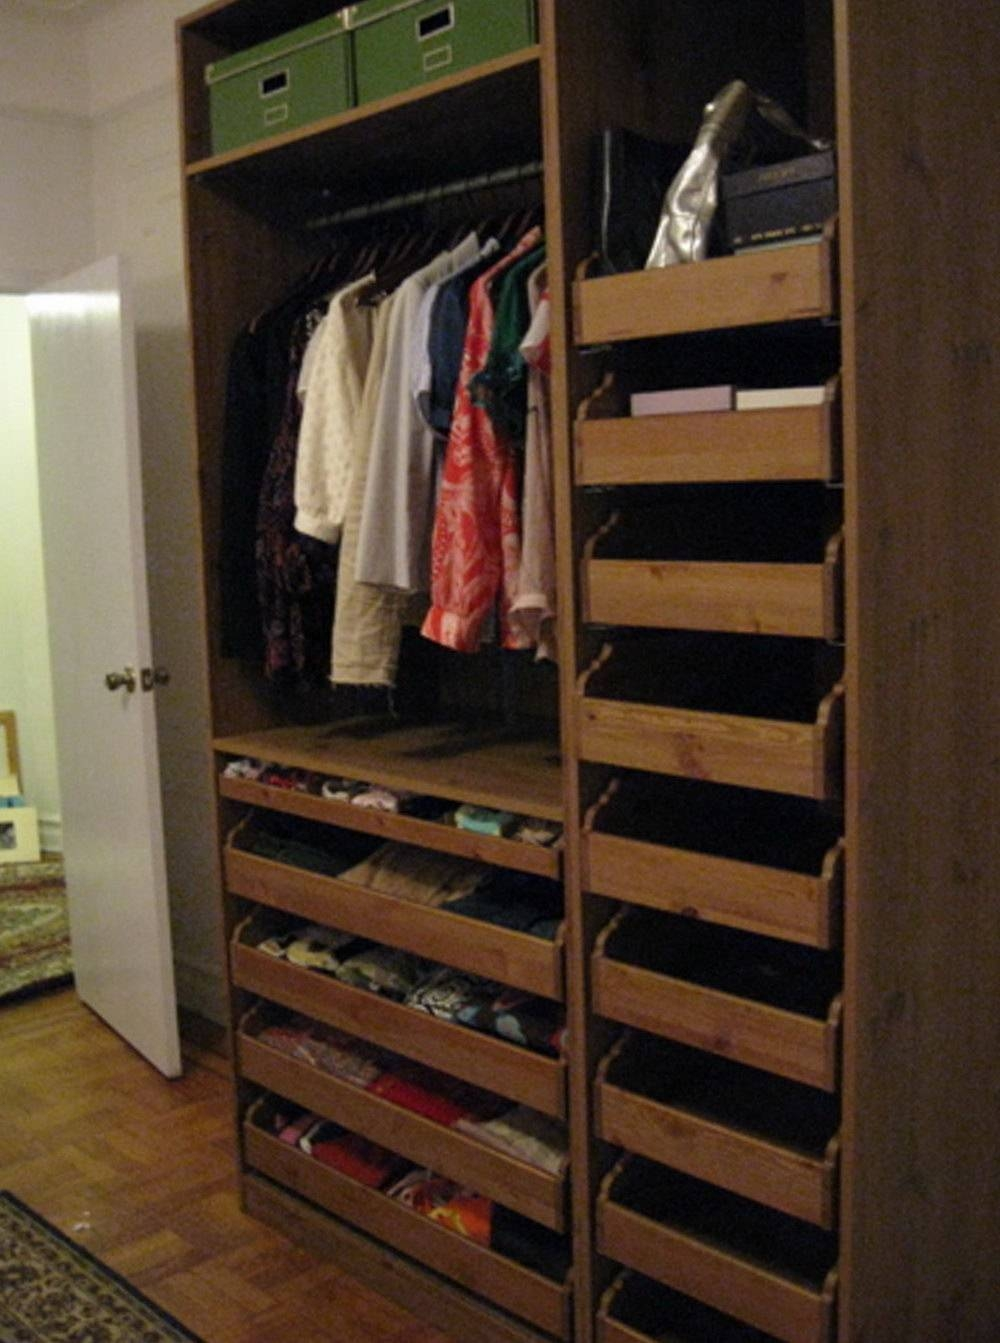 Corner Wardrobe Closet Ikea | Home Design Ideas in Corner Wardrobe Closet Ikea (Image 7 of 30)